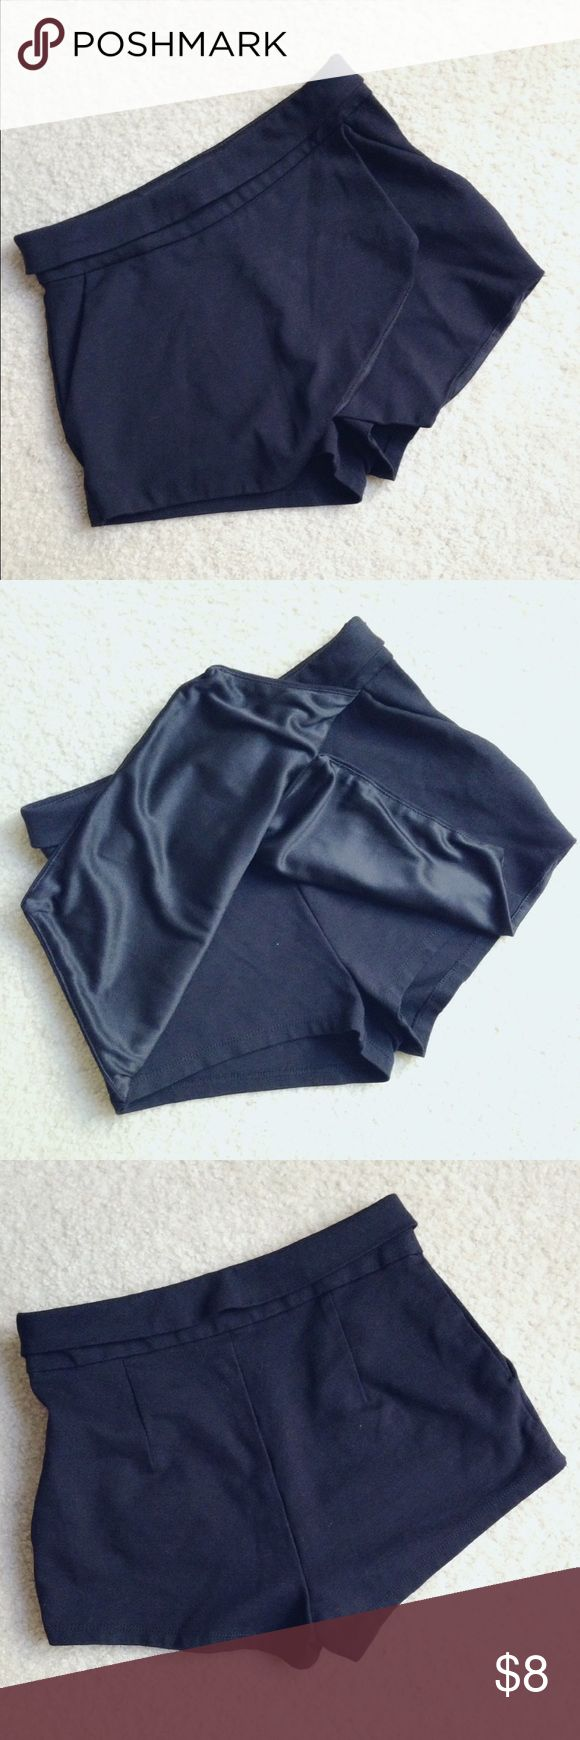 """Skirt -like shorts Black short with a skirt-like front, (back is pure short-look), invisible side zipper, two front pockets. 68% rayon, 27% nylon, 5% spandex, material has some thickness( feels like the material of suites), very very short length, inseam 1 3/4"""", junior size S. Waist approx 13 1/2"""". Brand is Active USA designed in Los Angeles Active USA Shorts"""